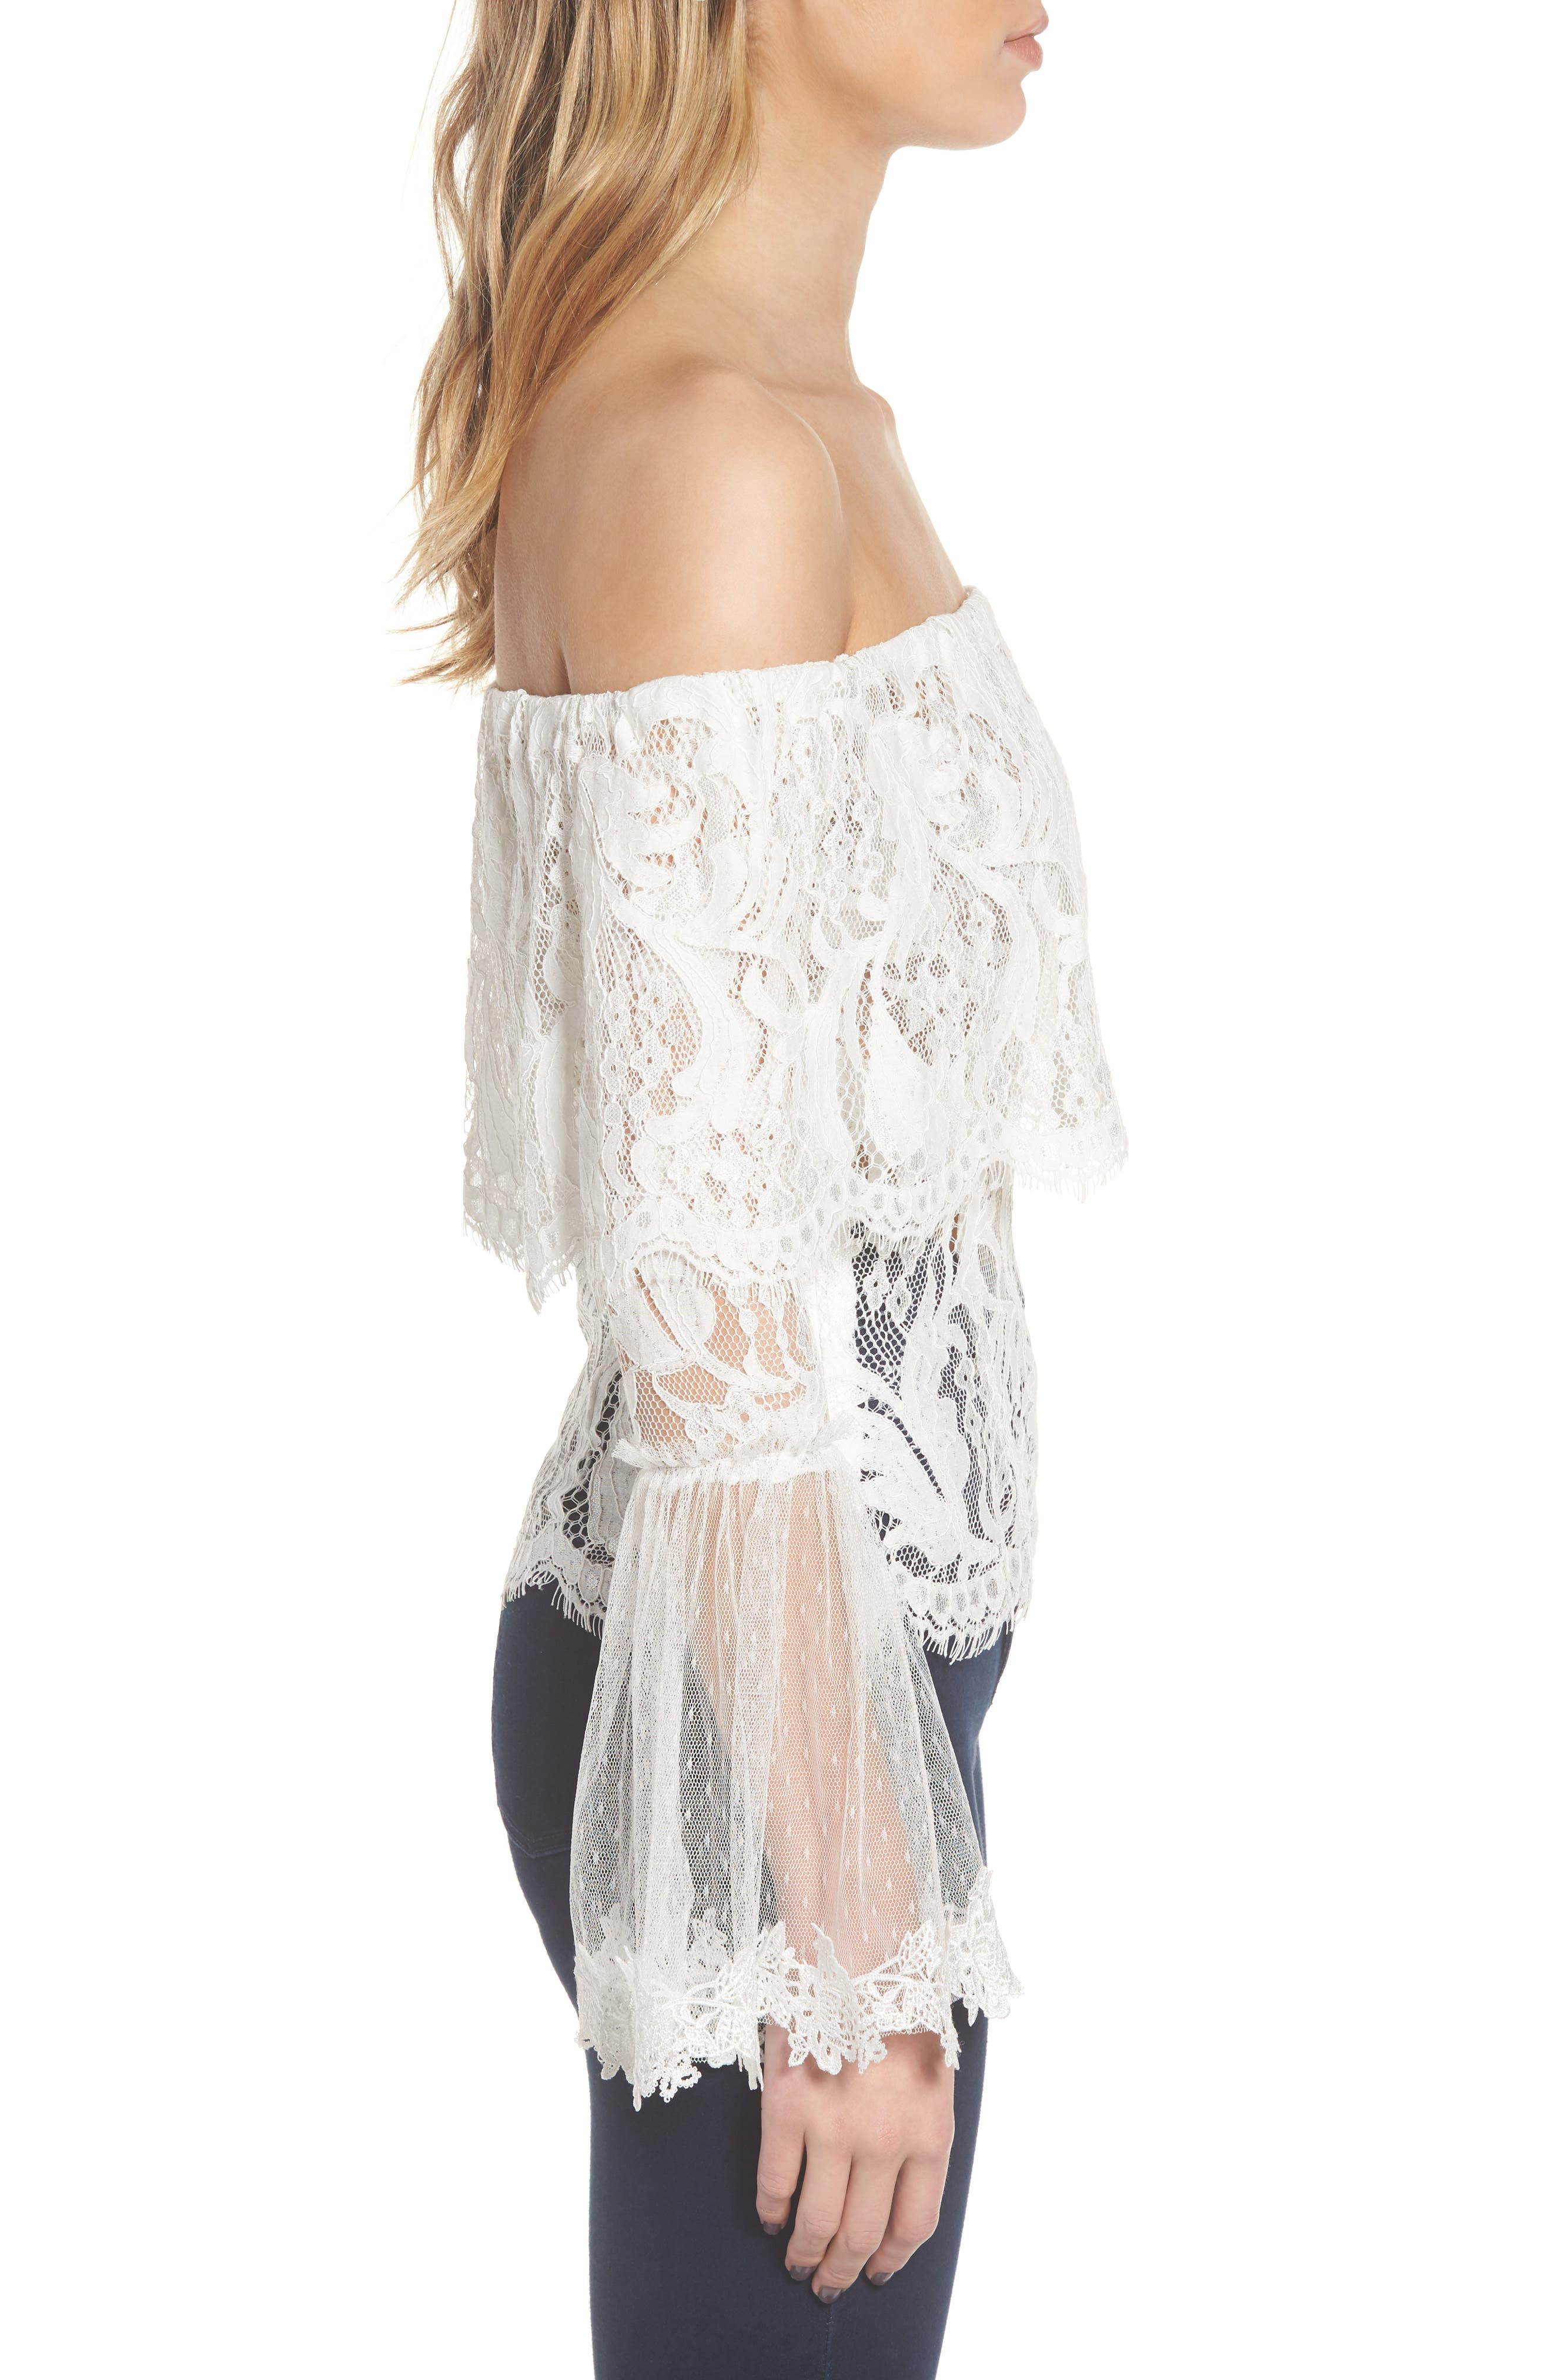 If You Dare Lace Off the Shoulder Blouse,                             Alternate thumbnail 3, color,                             Ivory